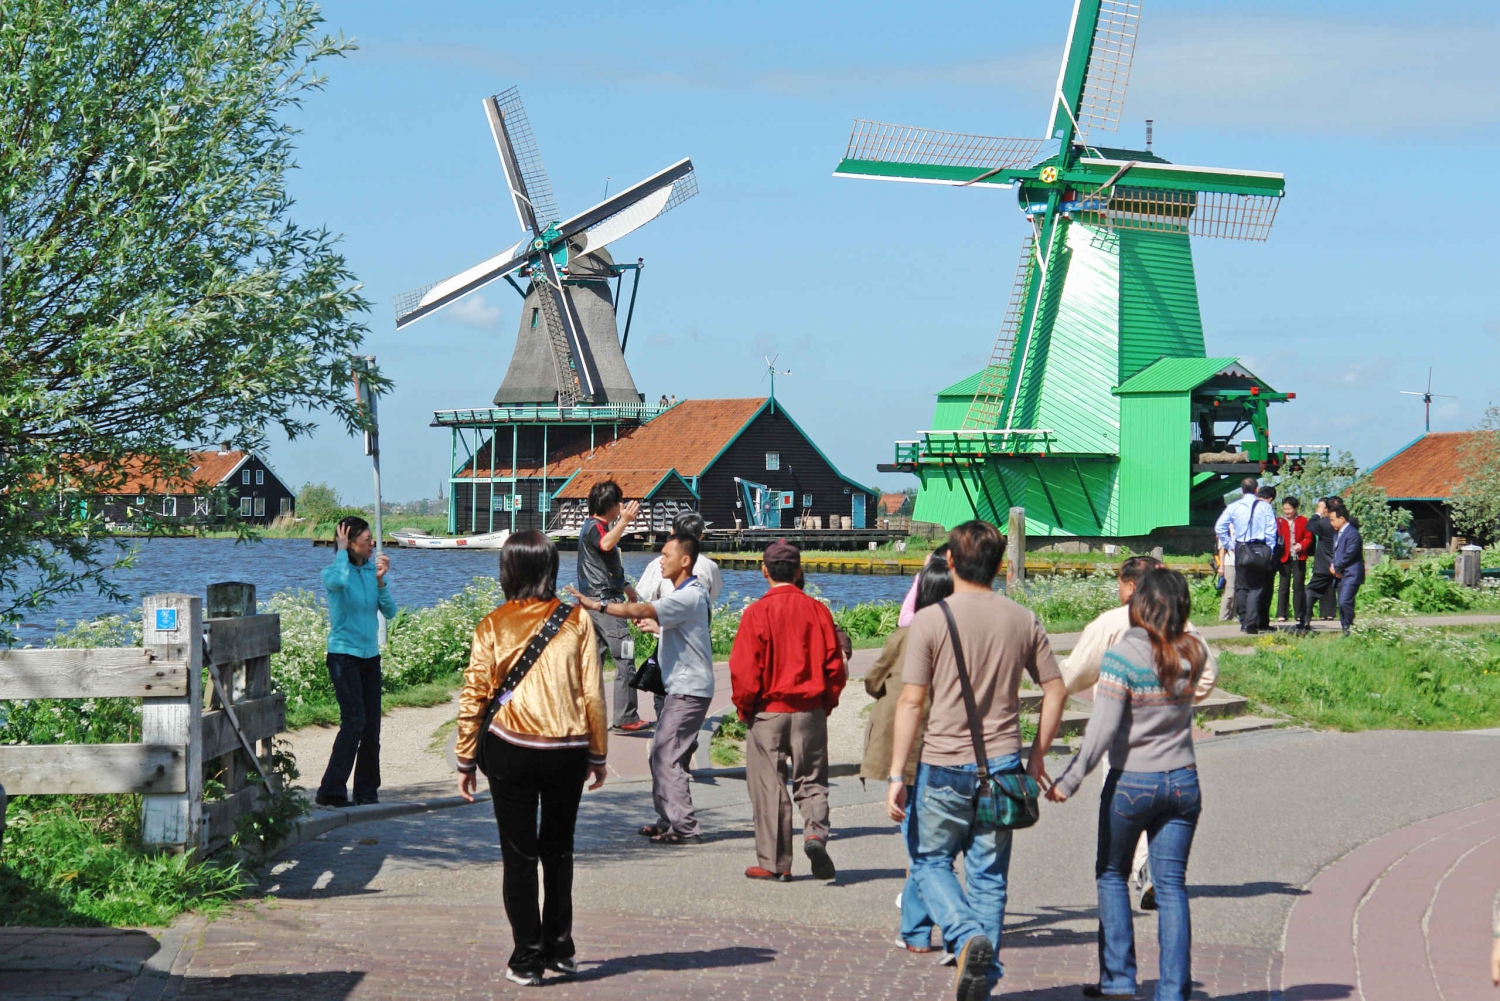 From Dutch Countryside Sightseeing Small Group